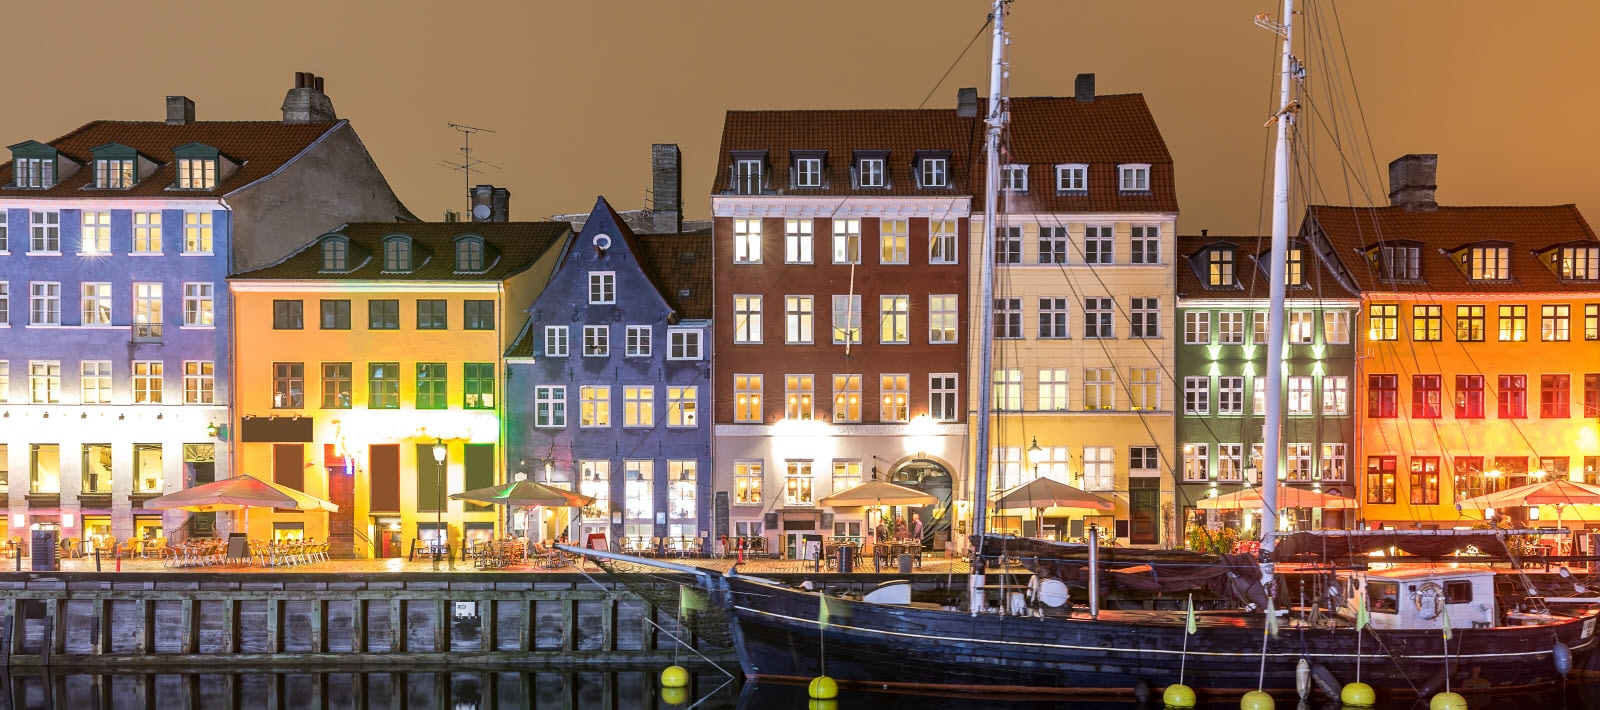 Copenhagen Nyhavn, New port of Copenhagen, at night in Denmark